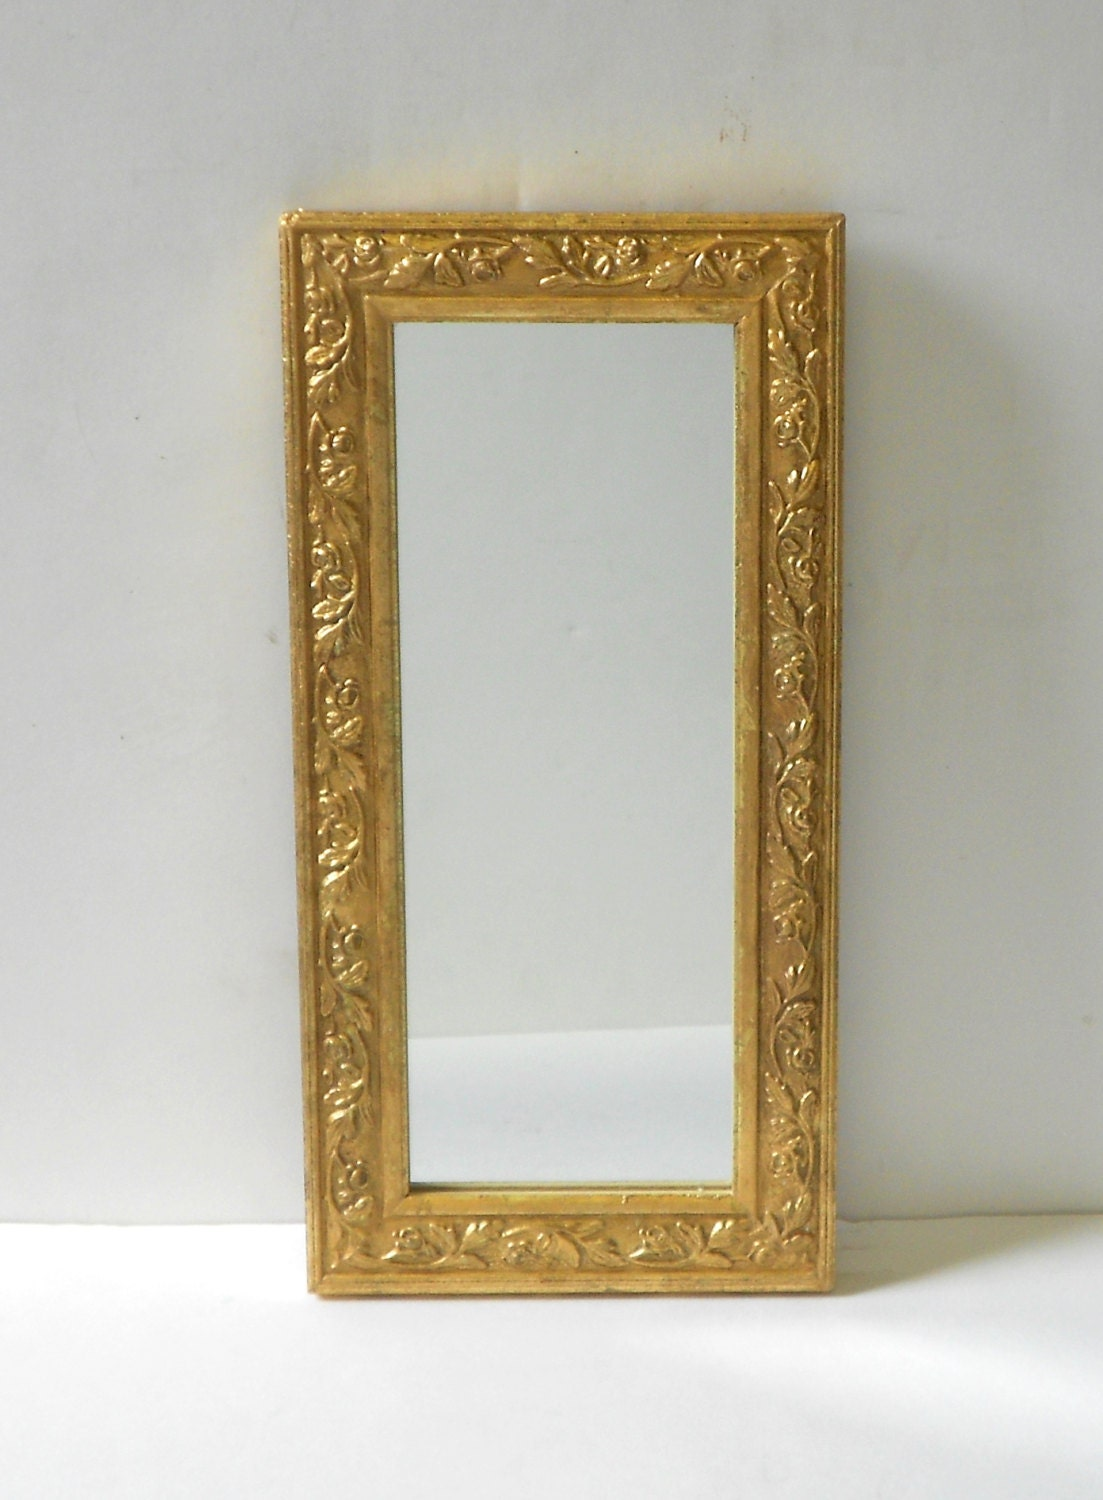 12x6 mirror wall mirror narrow mirror decorative mirror for Narrow mirror